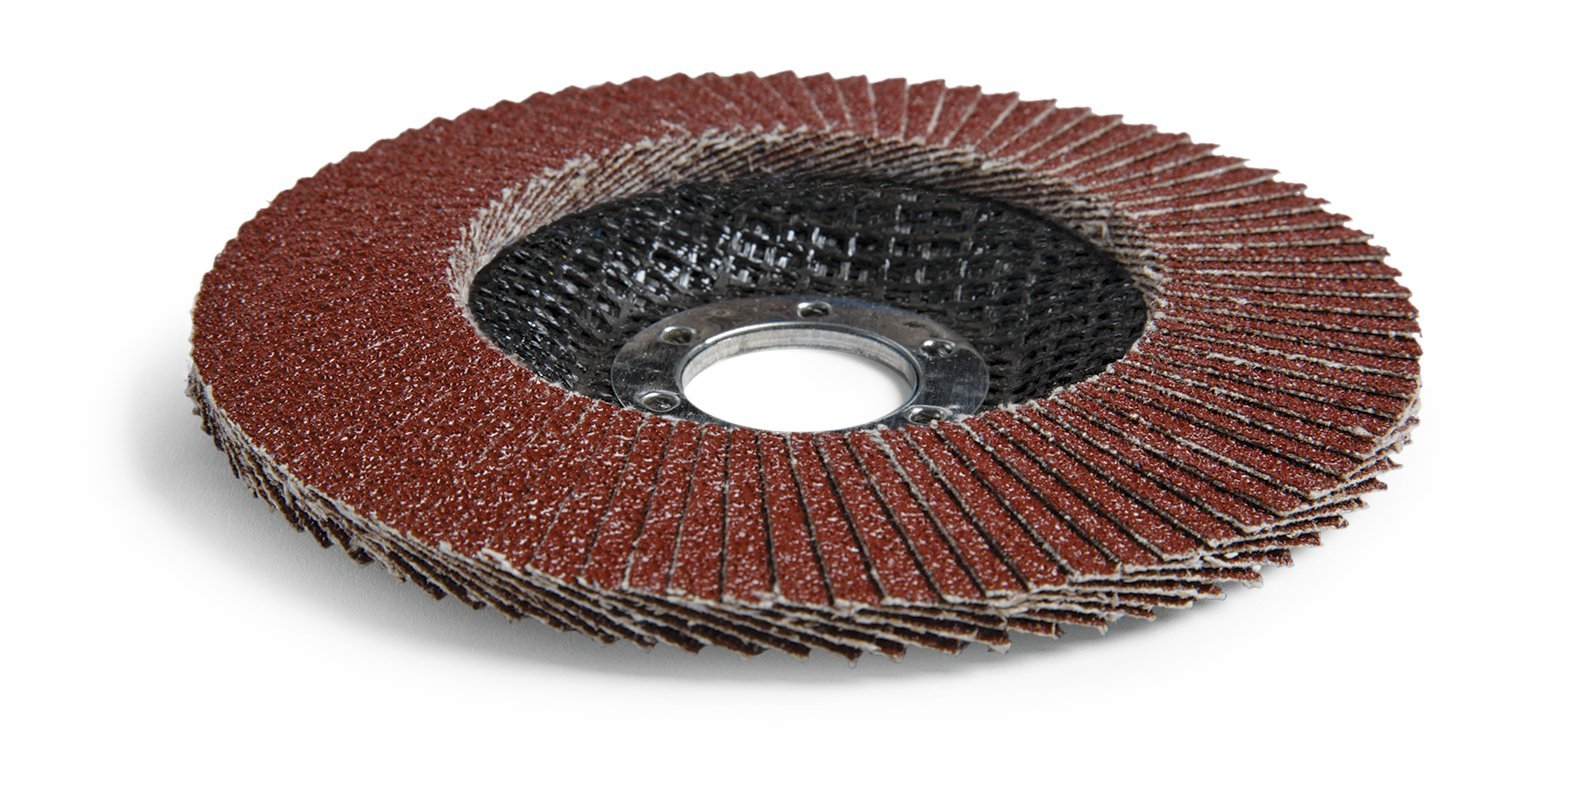 3M Cubitron II Flap Disc 967A, Type 29, Threaded Attachment, Cloth, Ceramic Grain, 4-1/2'' Diameter, 60+ Grit, Brown (Pack of 10)